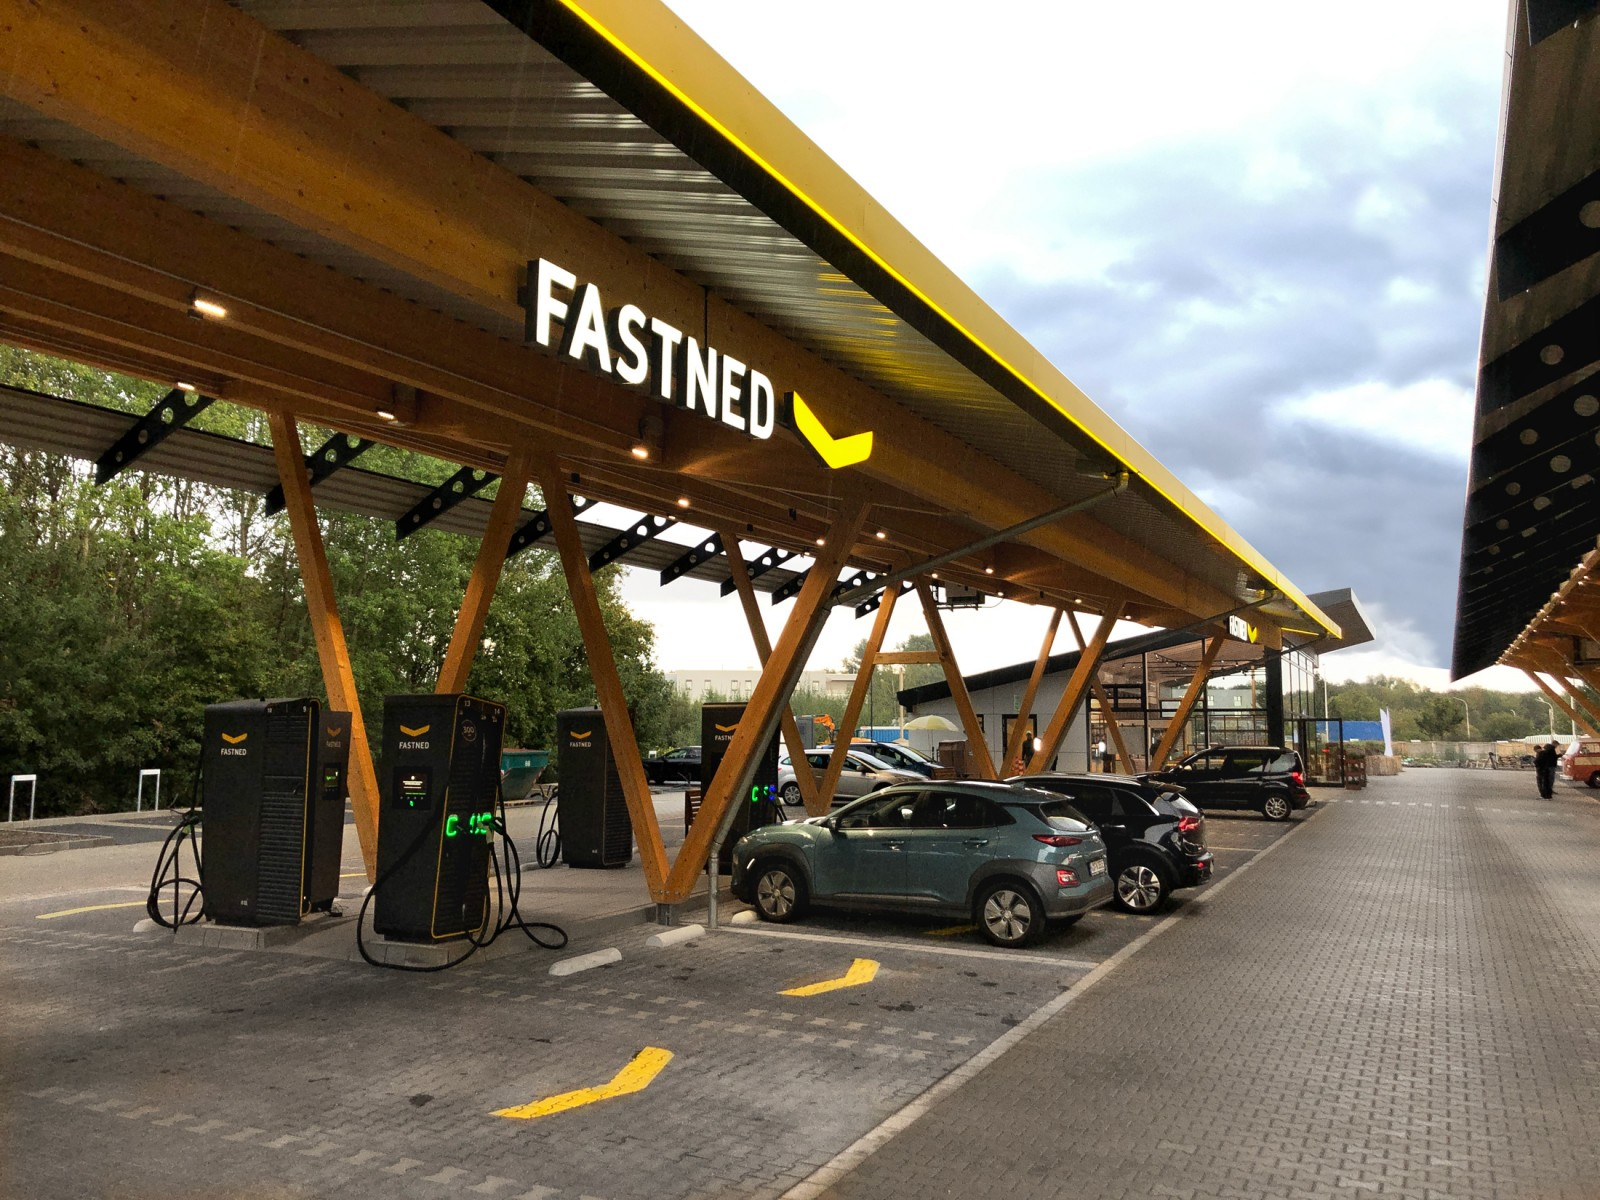 Fastned fast charging station_Kreuz_Hilden_Germany's largest charging hub